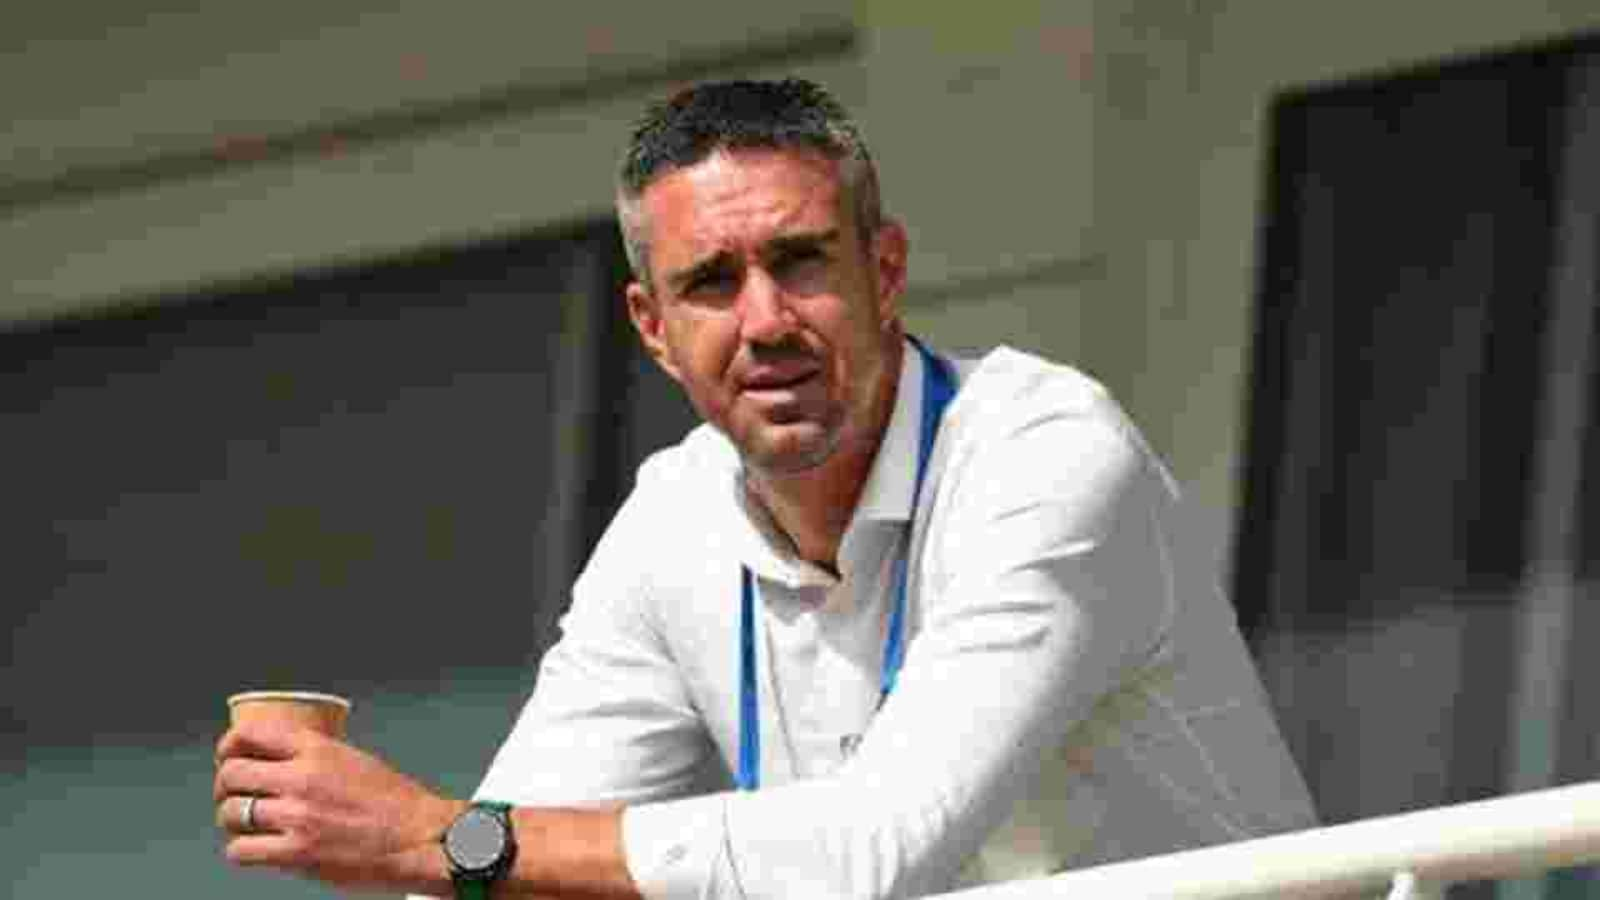 'Have played on grassy pitches in England where batting was impossible': Kevin Pietersen reacts Ahmedabad pitch - Hindustan Times